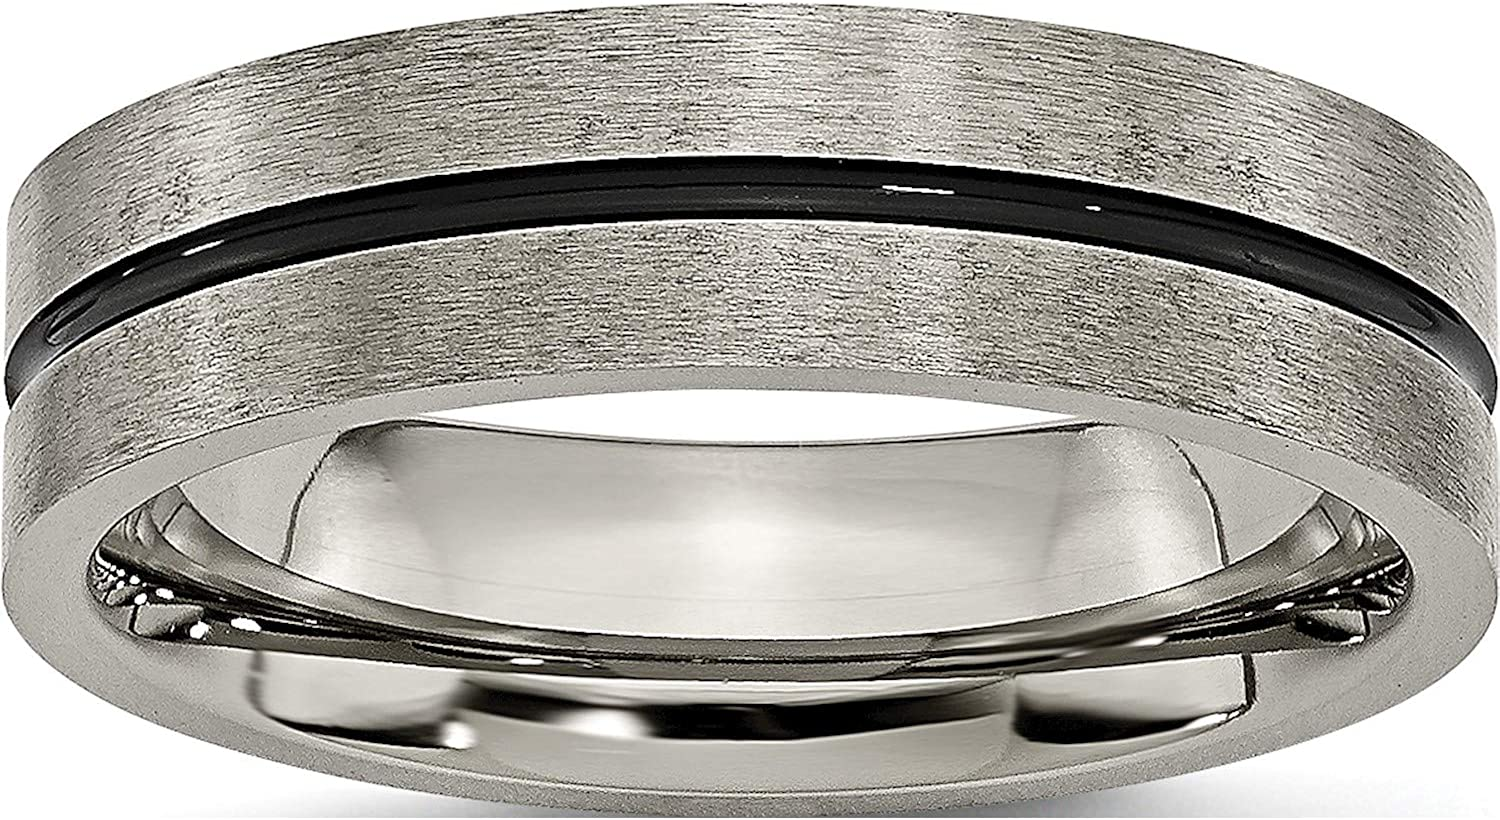 Jewelry By Max 66% OFF Sweet Pea Titanium Direct sale of manufacturer Black Band 6mm Brushed Enamel Wid